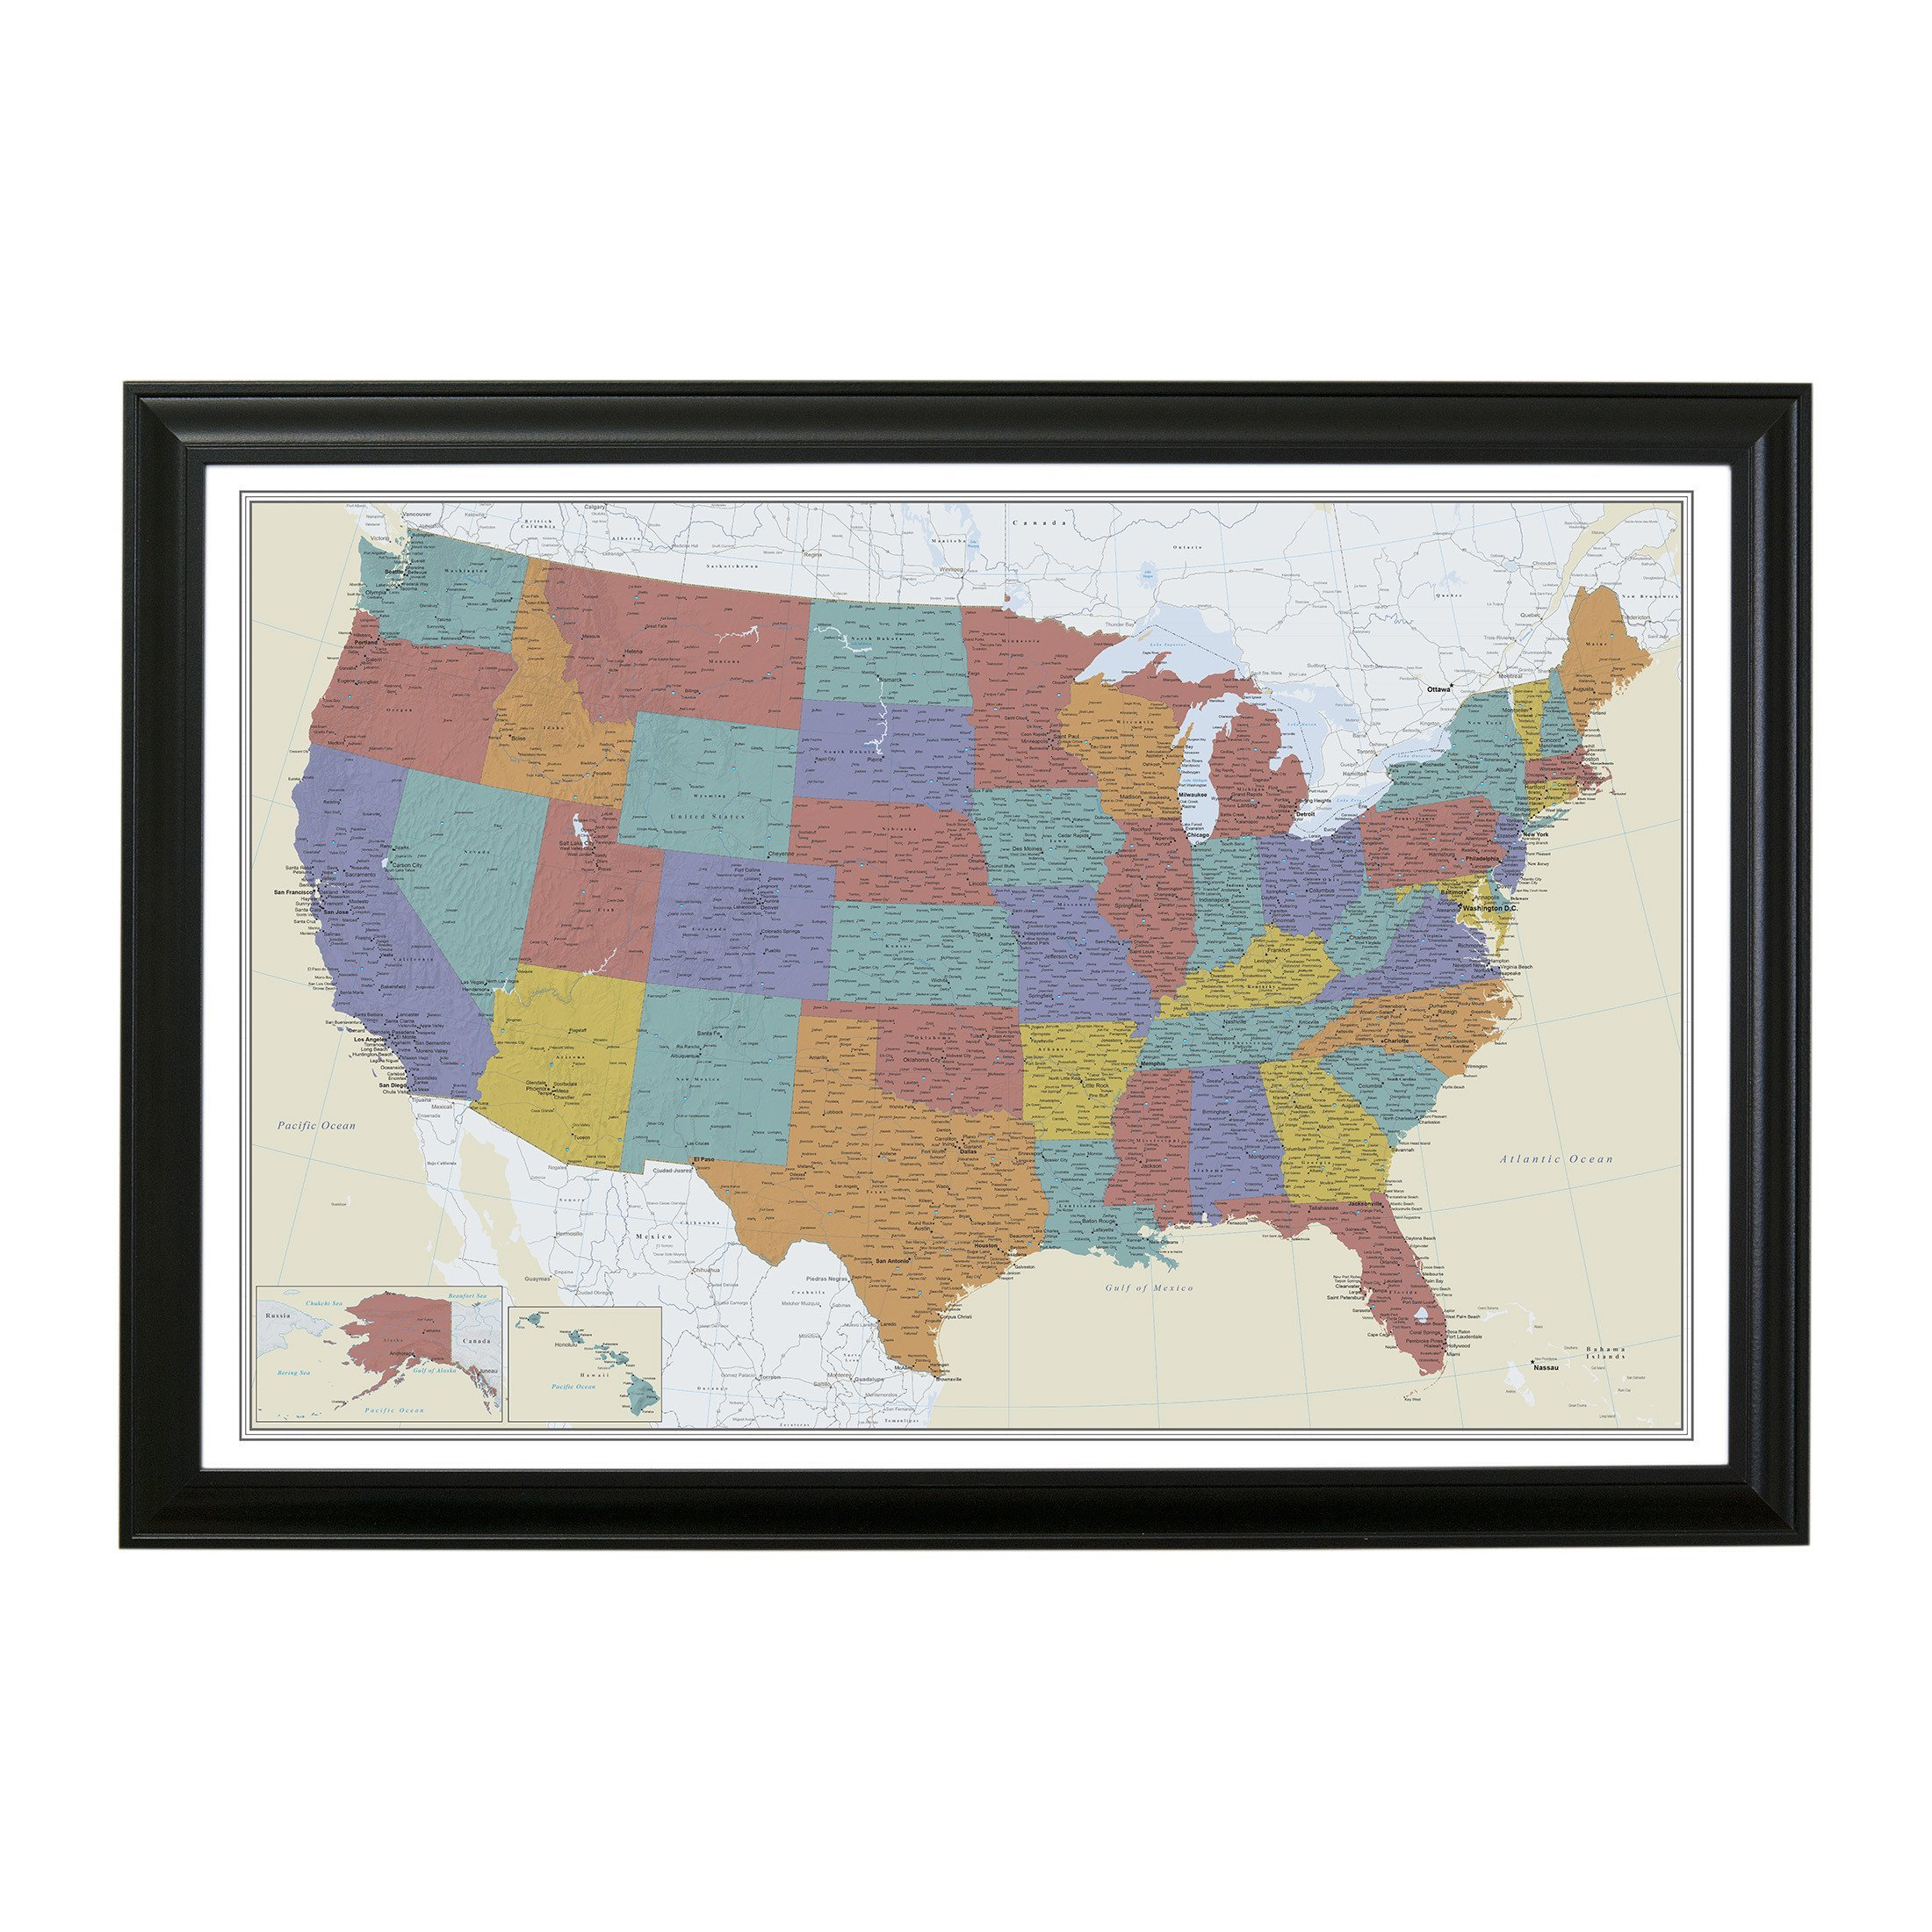 Tan Oceans USA Push Pin Travel Map with Black Frame and Pins 24 x 36 by Push Pin Travel Maps (Image #5)